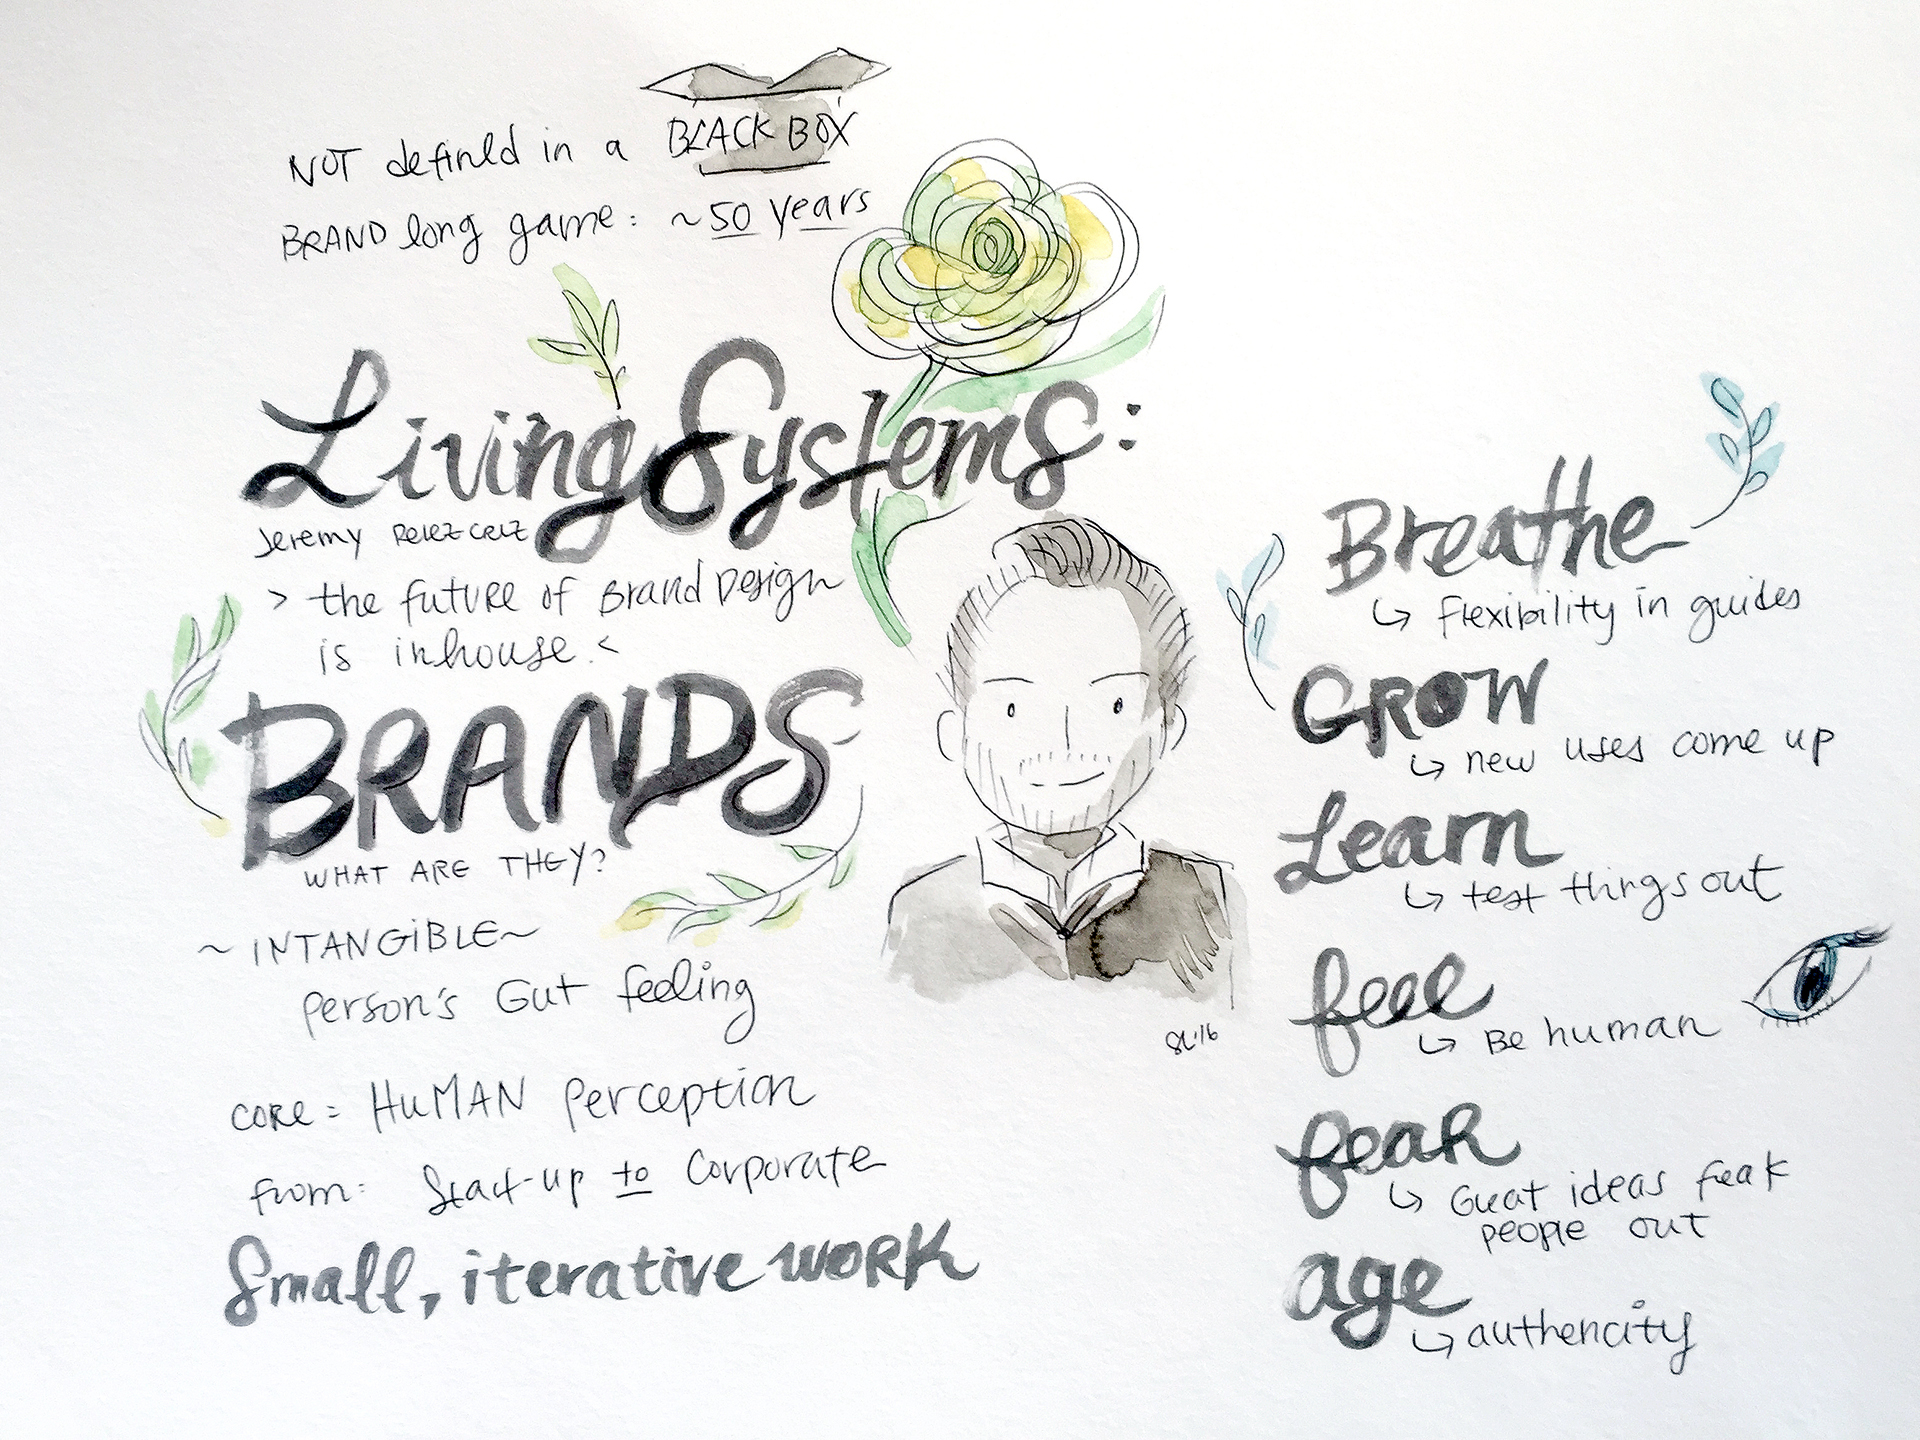 Living Systems: Brand in the Context of People's Lives